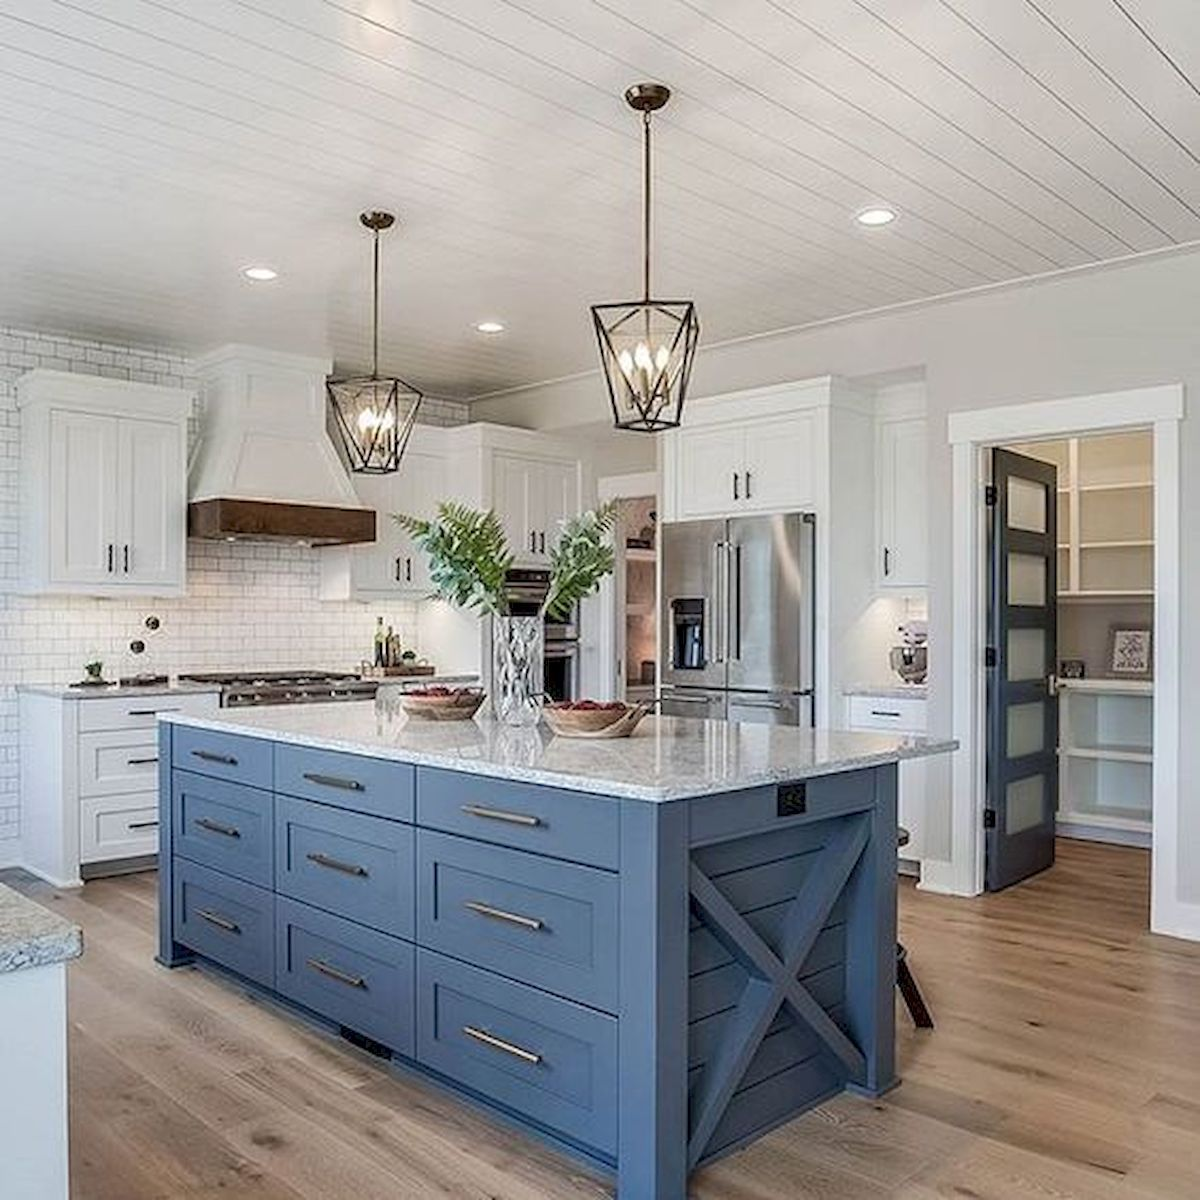 Farmhouse Kitchen Cabinets: 77 Best Farmhouse Kitchen Decor Ideas And Remodel